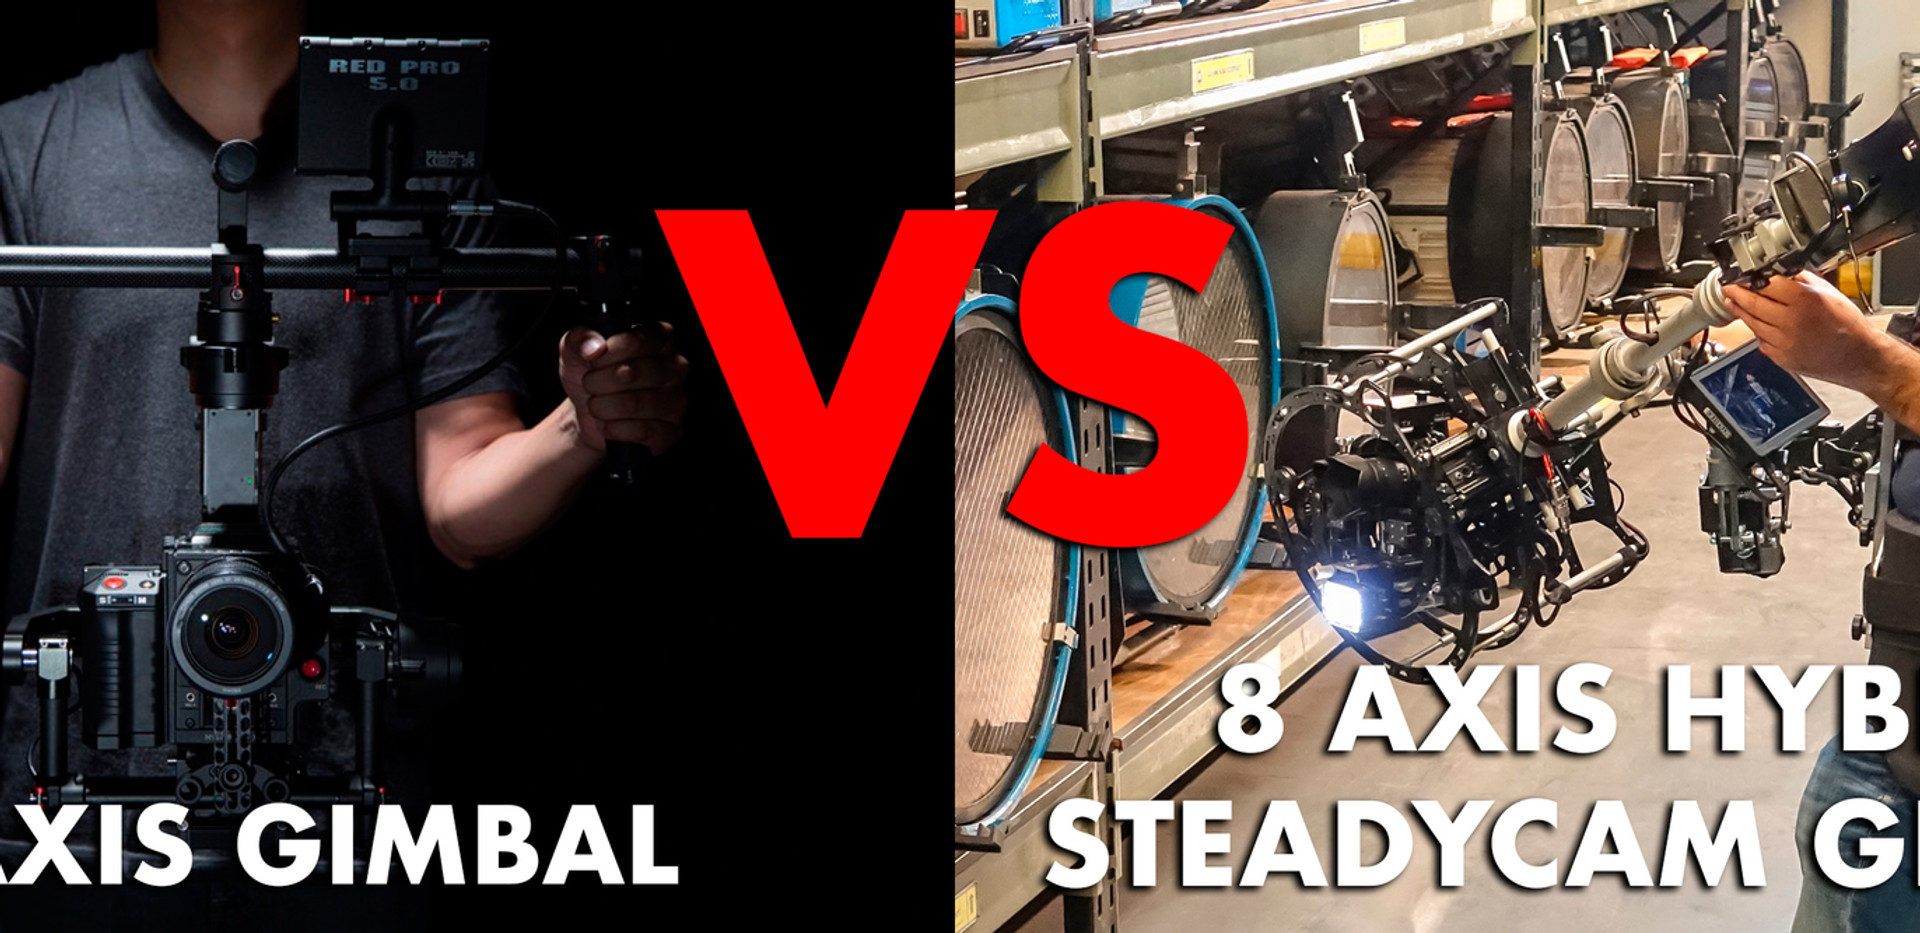 steadicam vs gimbal vs hybrid steadycam Basson Steady camera stabilizer